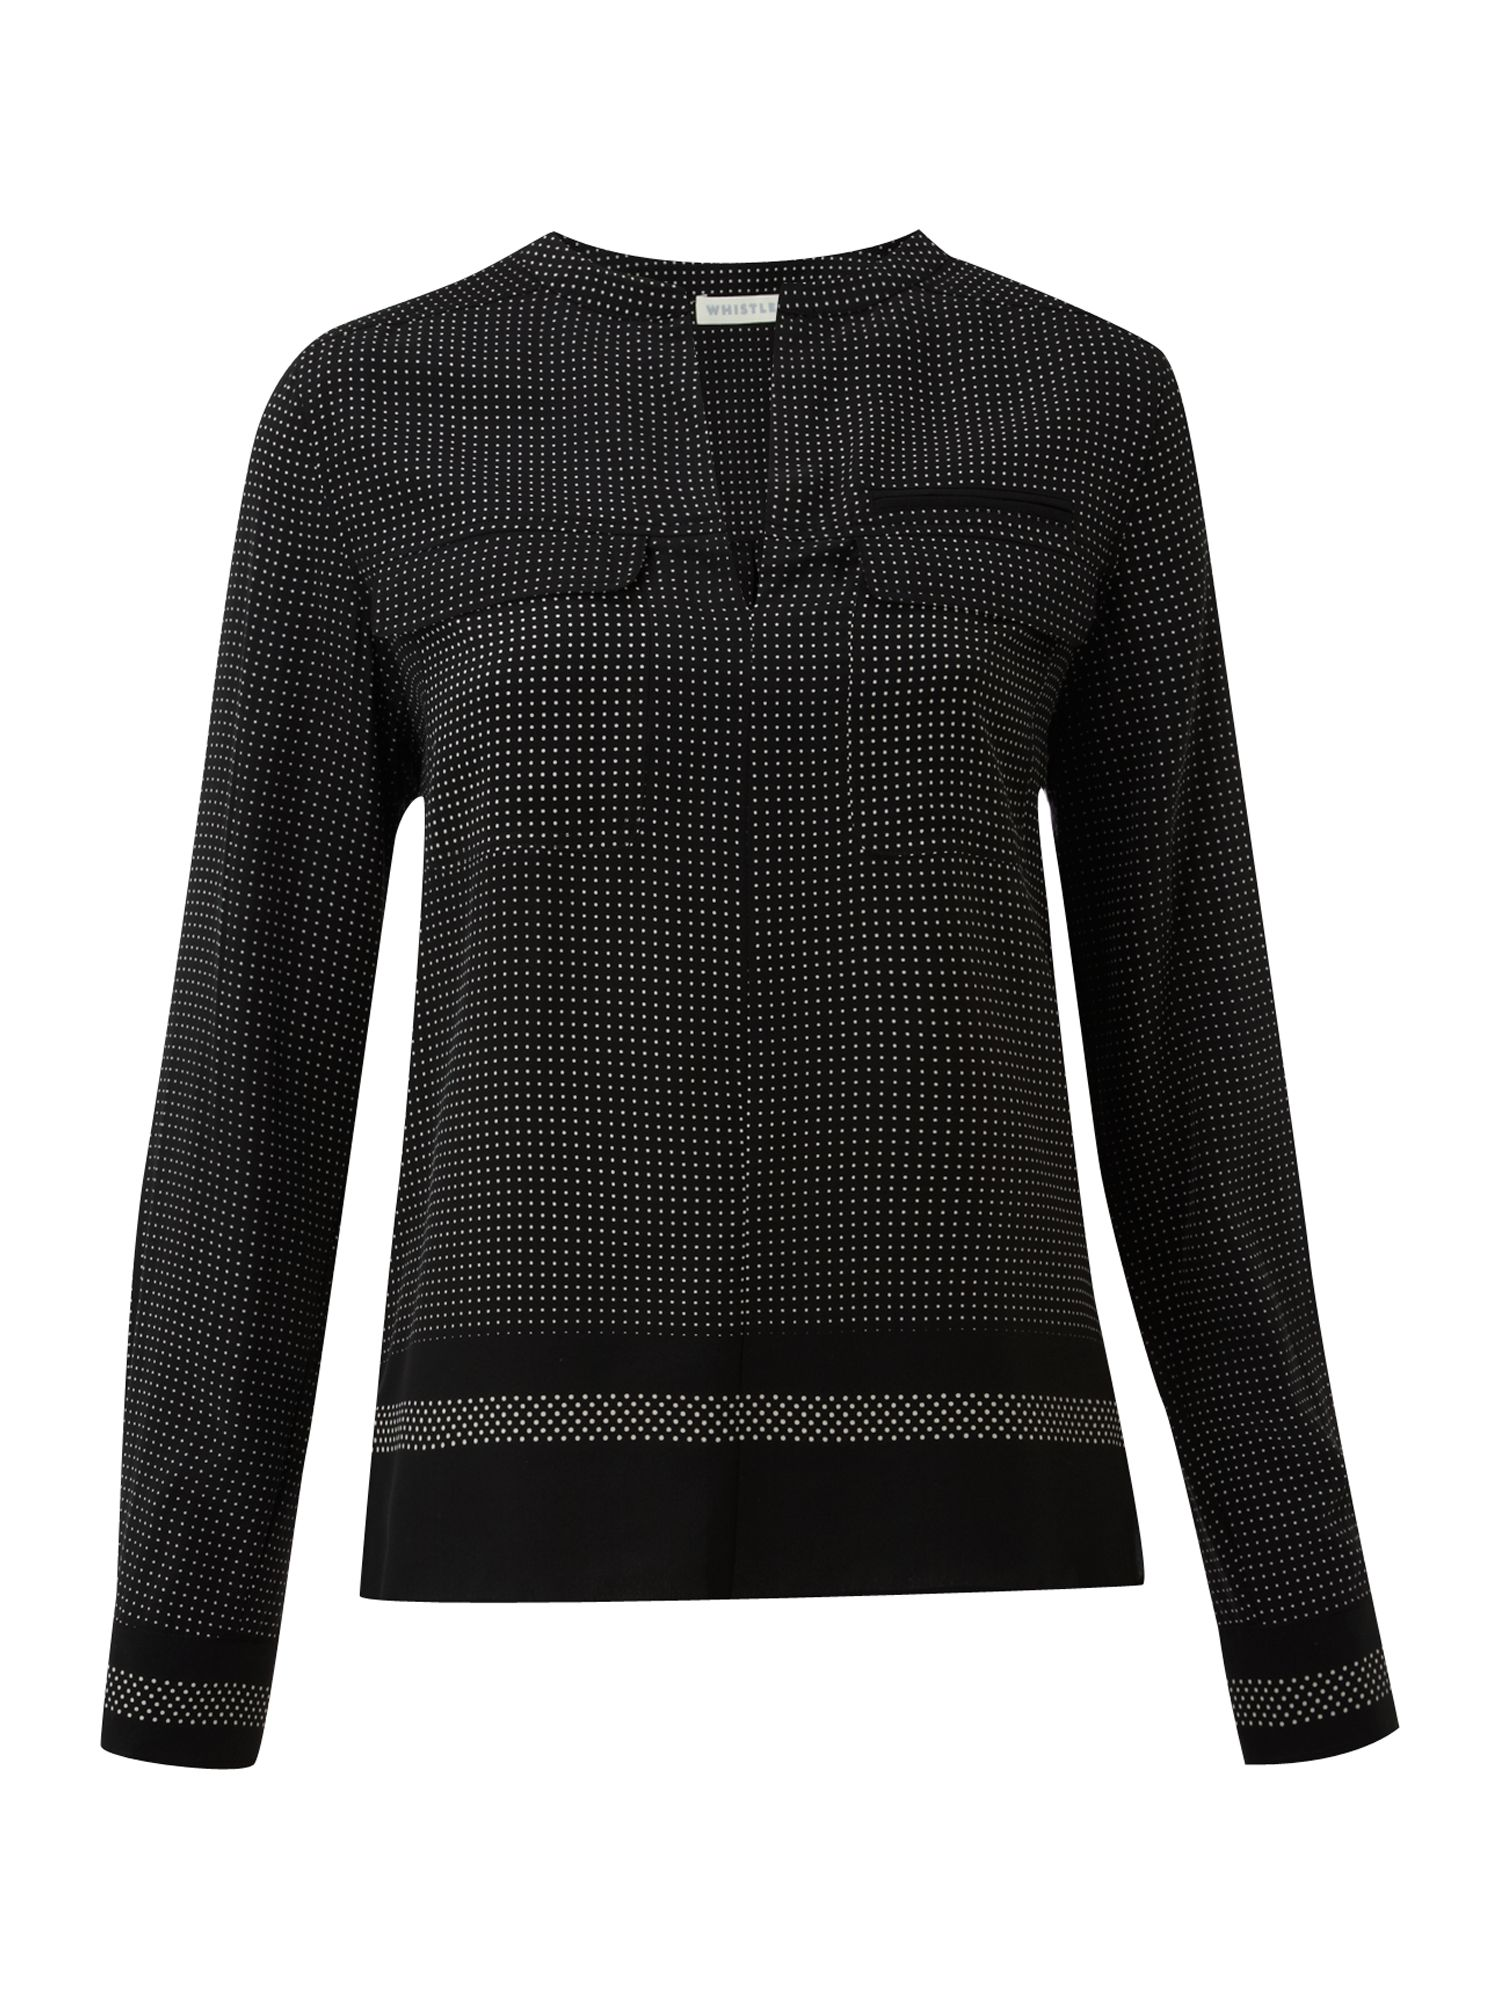 Whistles Womens Whistles Prudence dot blouse, Black product image